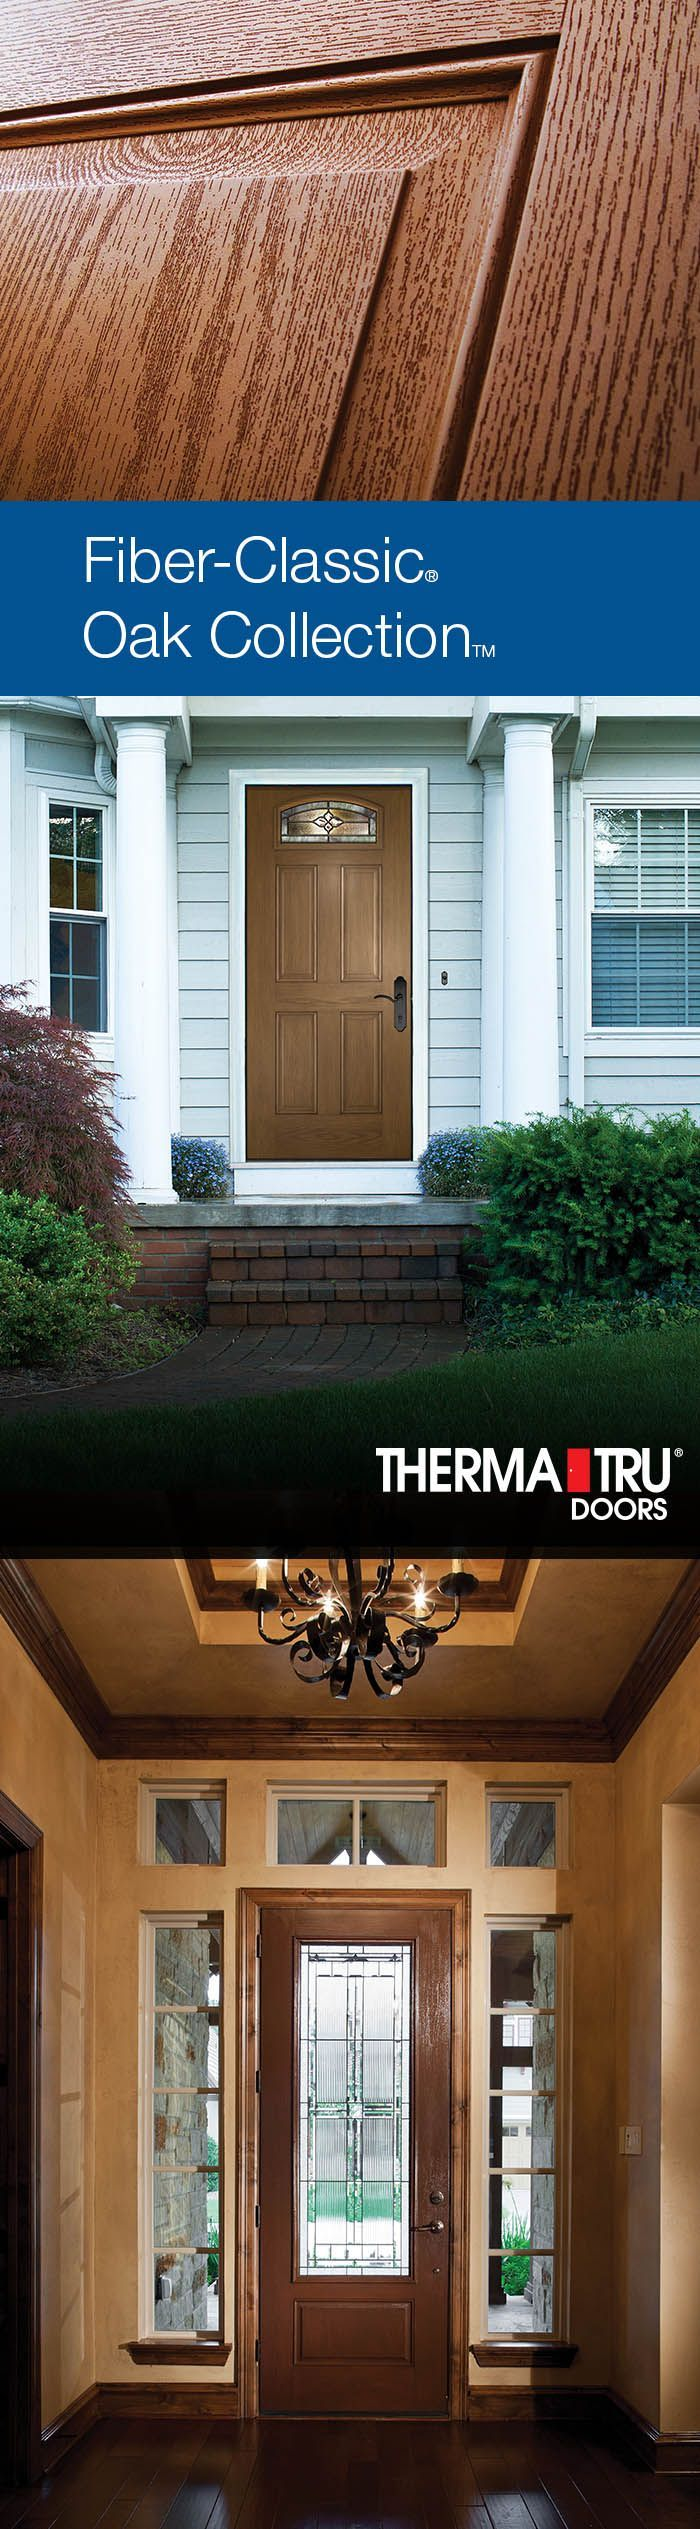 sliding smooth pinterest for glass tru on doors star in homeward built blinds best thermatrudoors result front image with therma images entrance